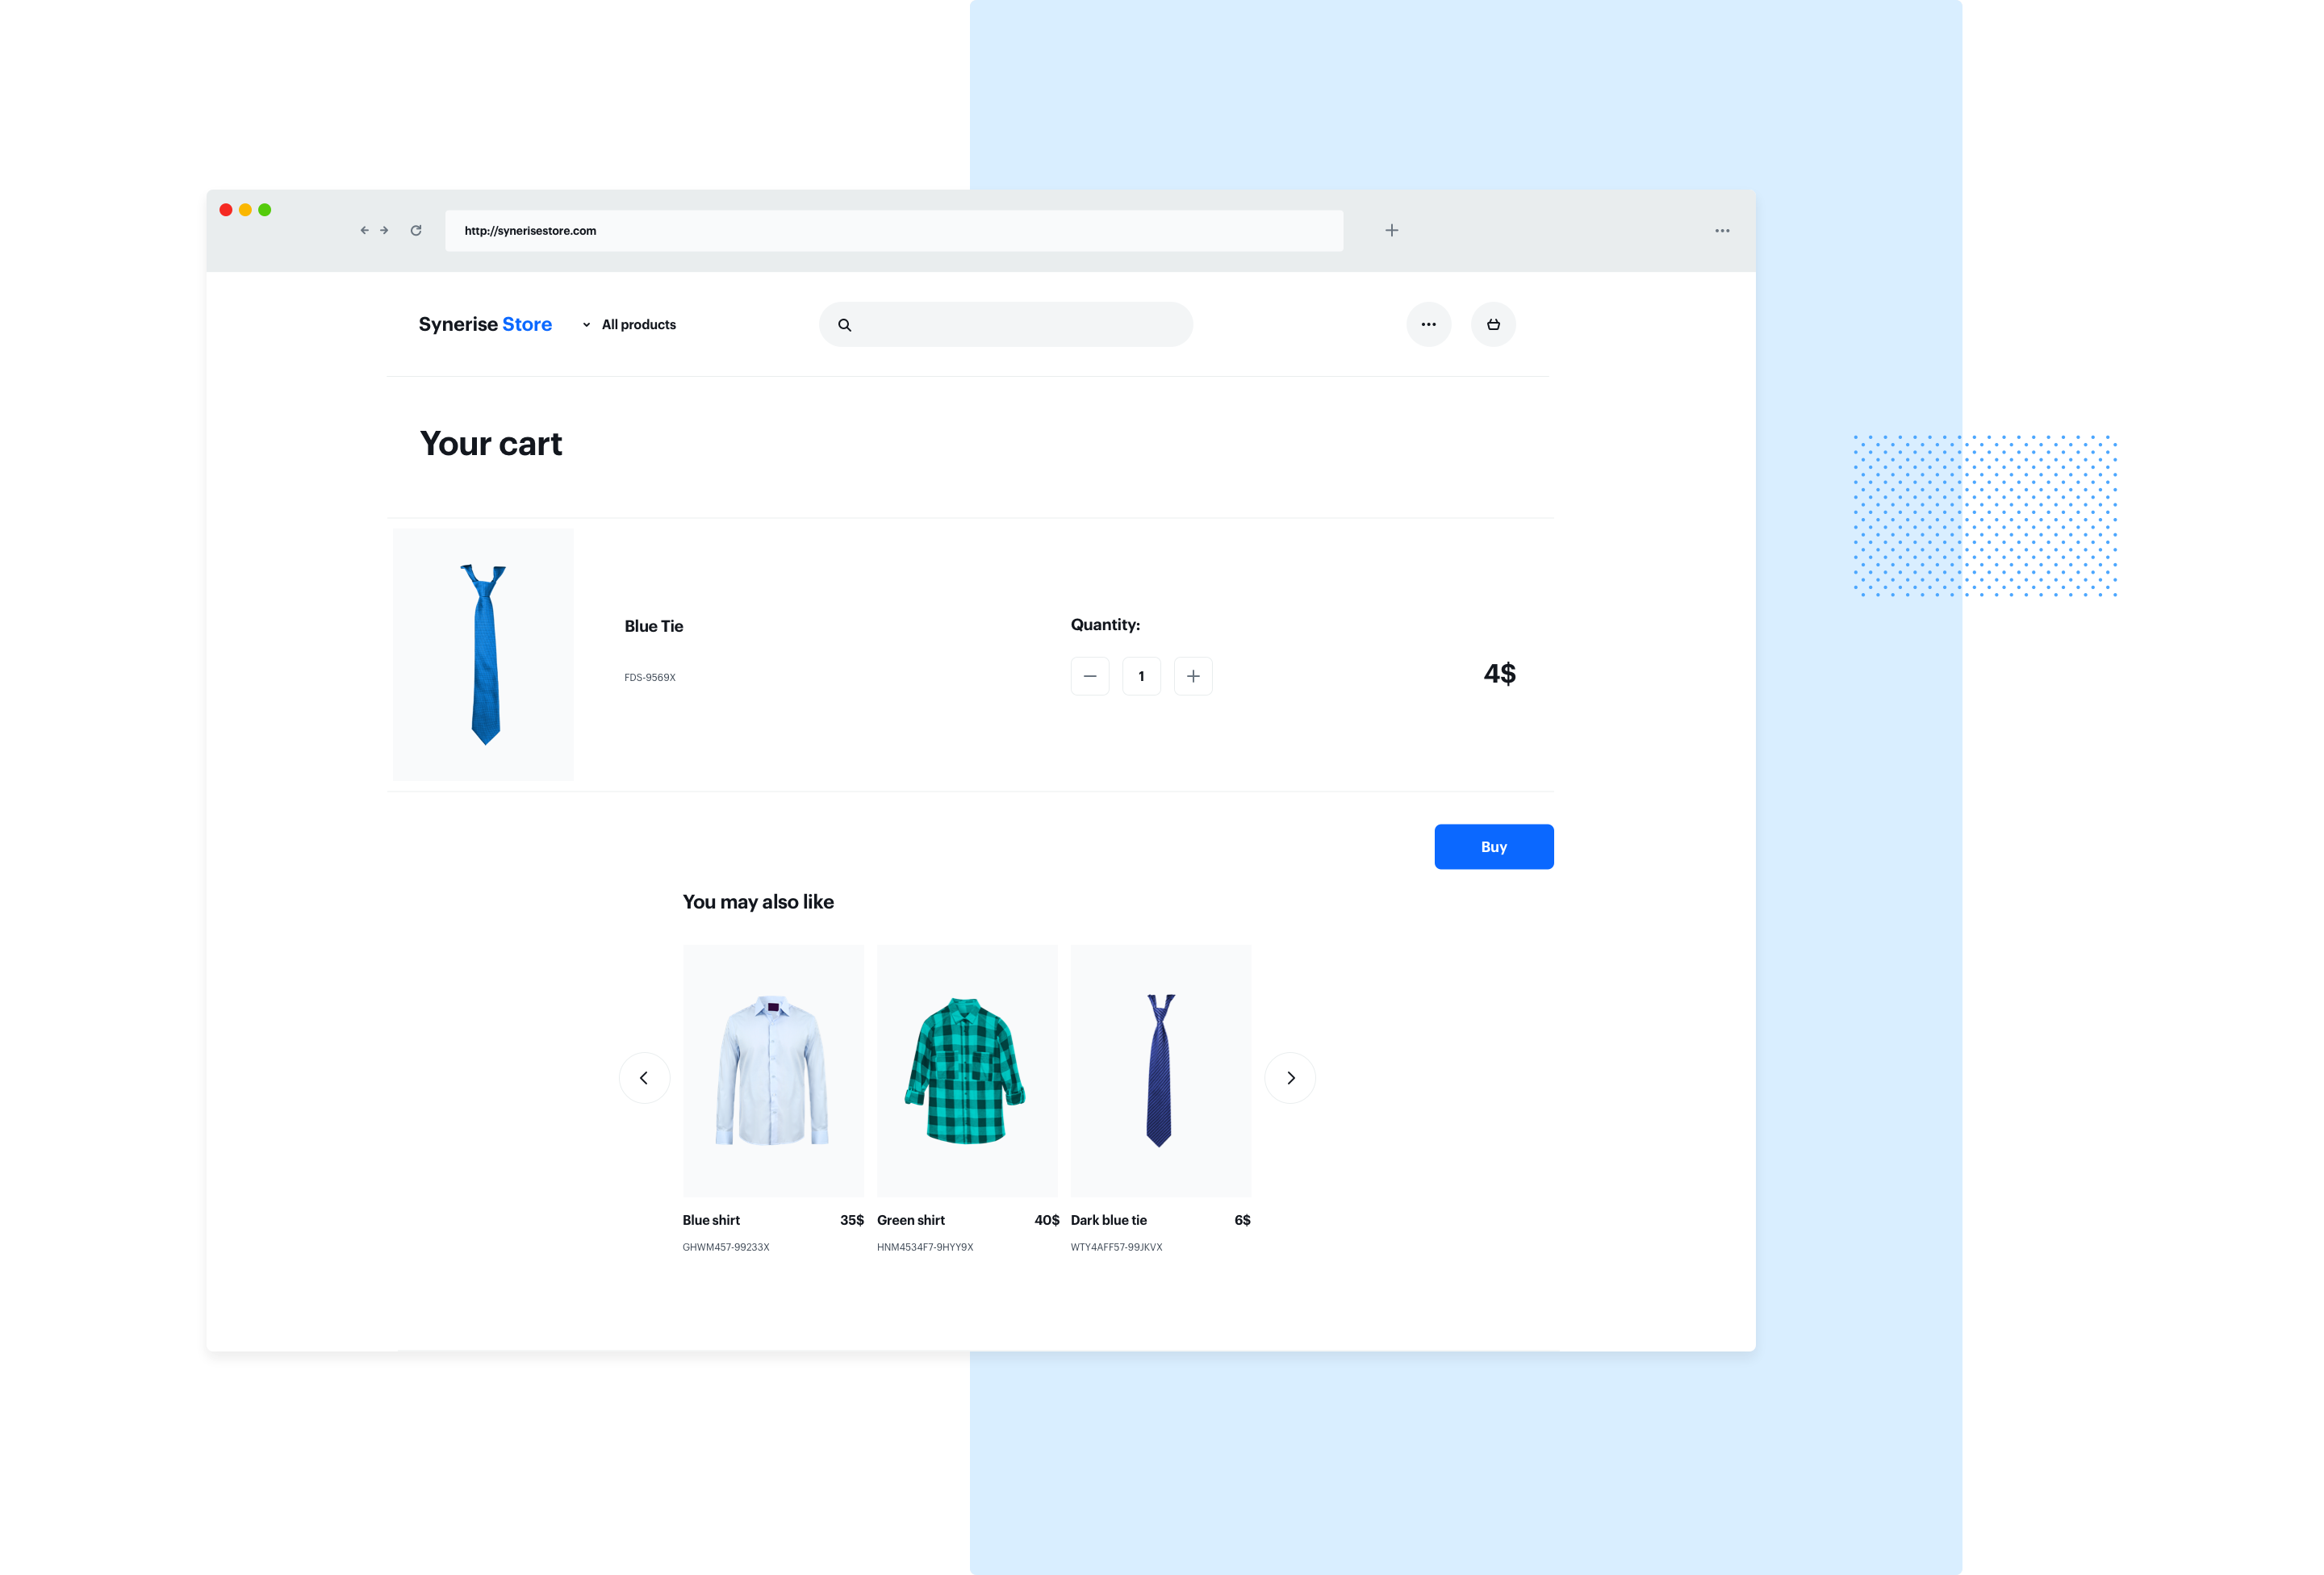 For other products - cross-sell personalized recommendations on the site